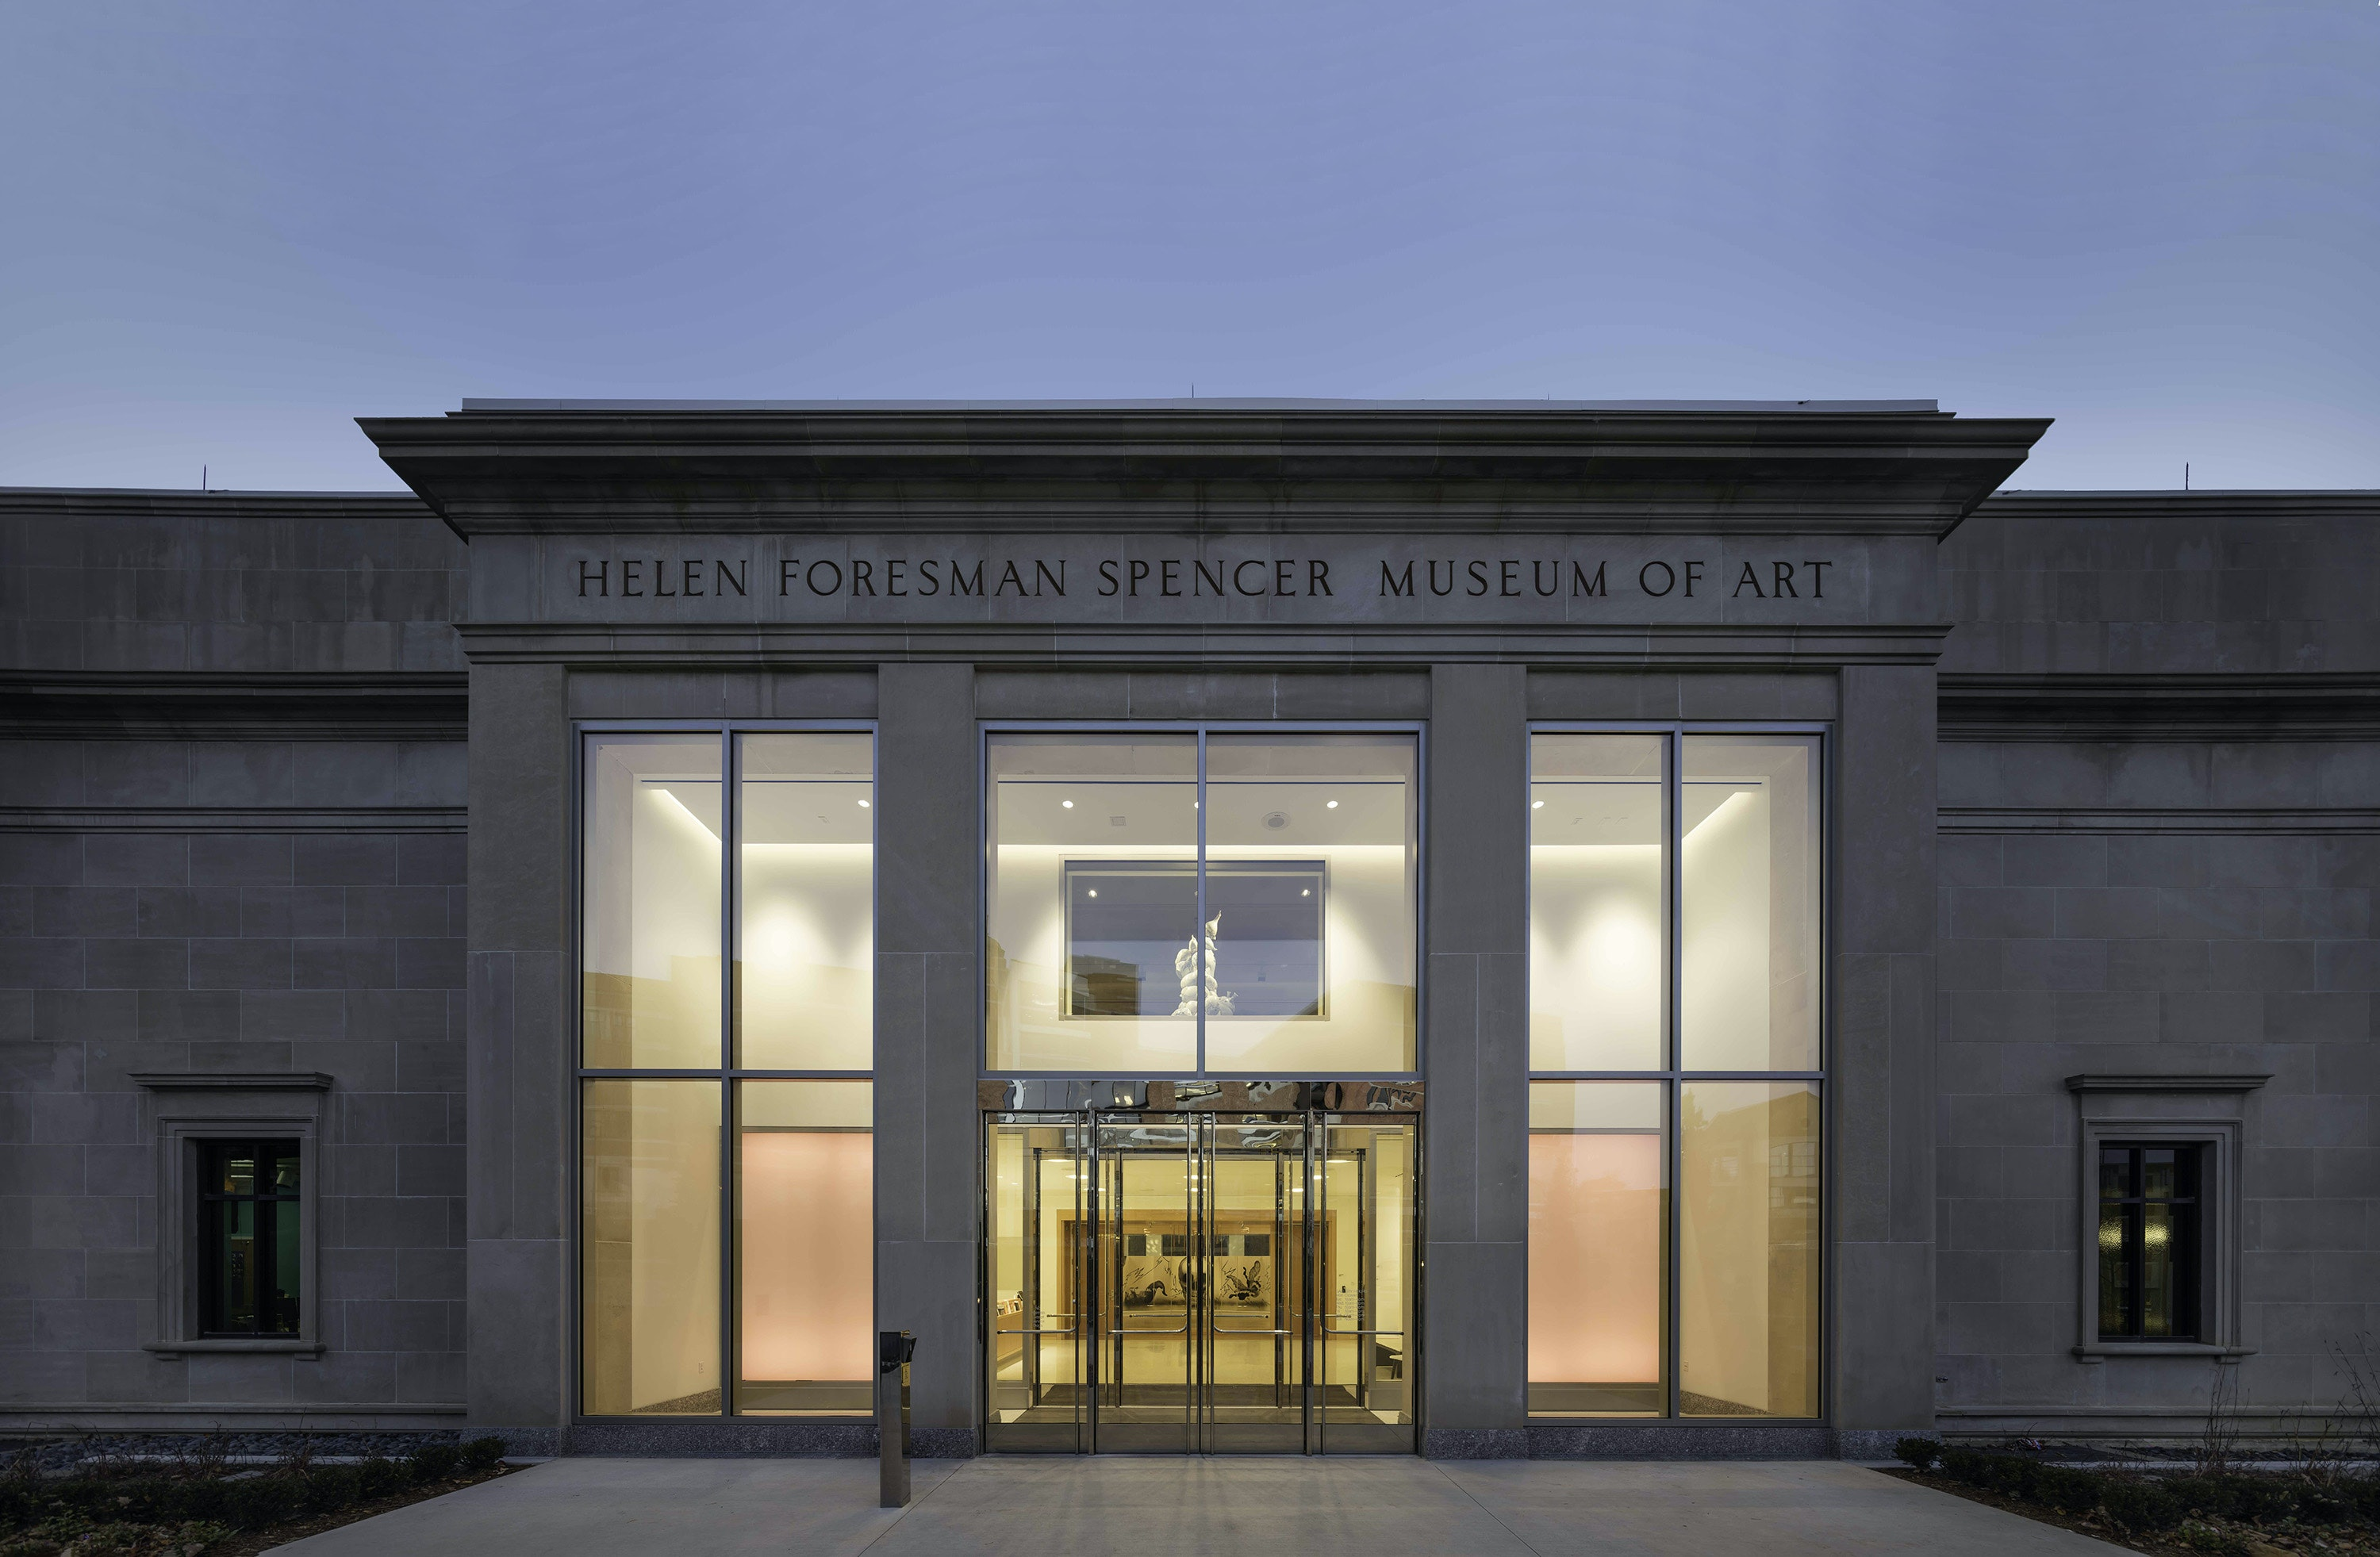 Spencer Museum of Art Renovation, The University of Kansas by Pei Cobb Freed & Partners